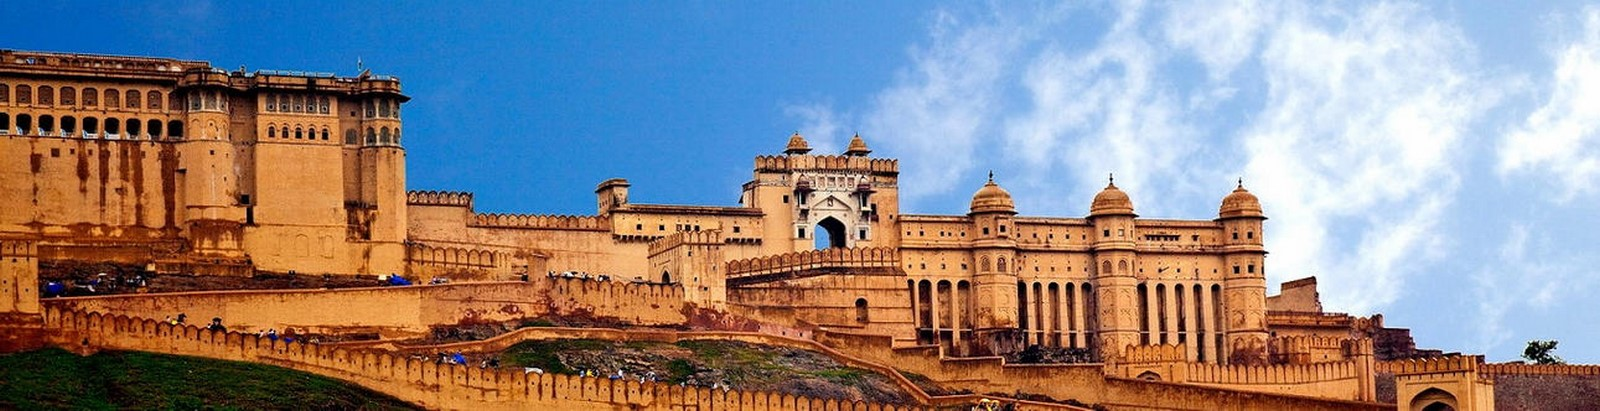 10 Historical buildings in India where architecture reflects ancient stories - Sheet5